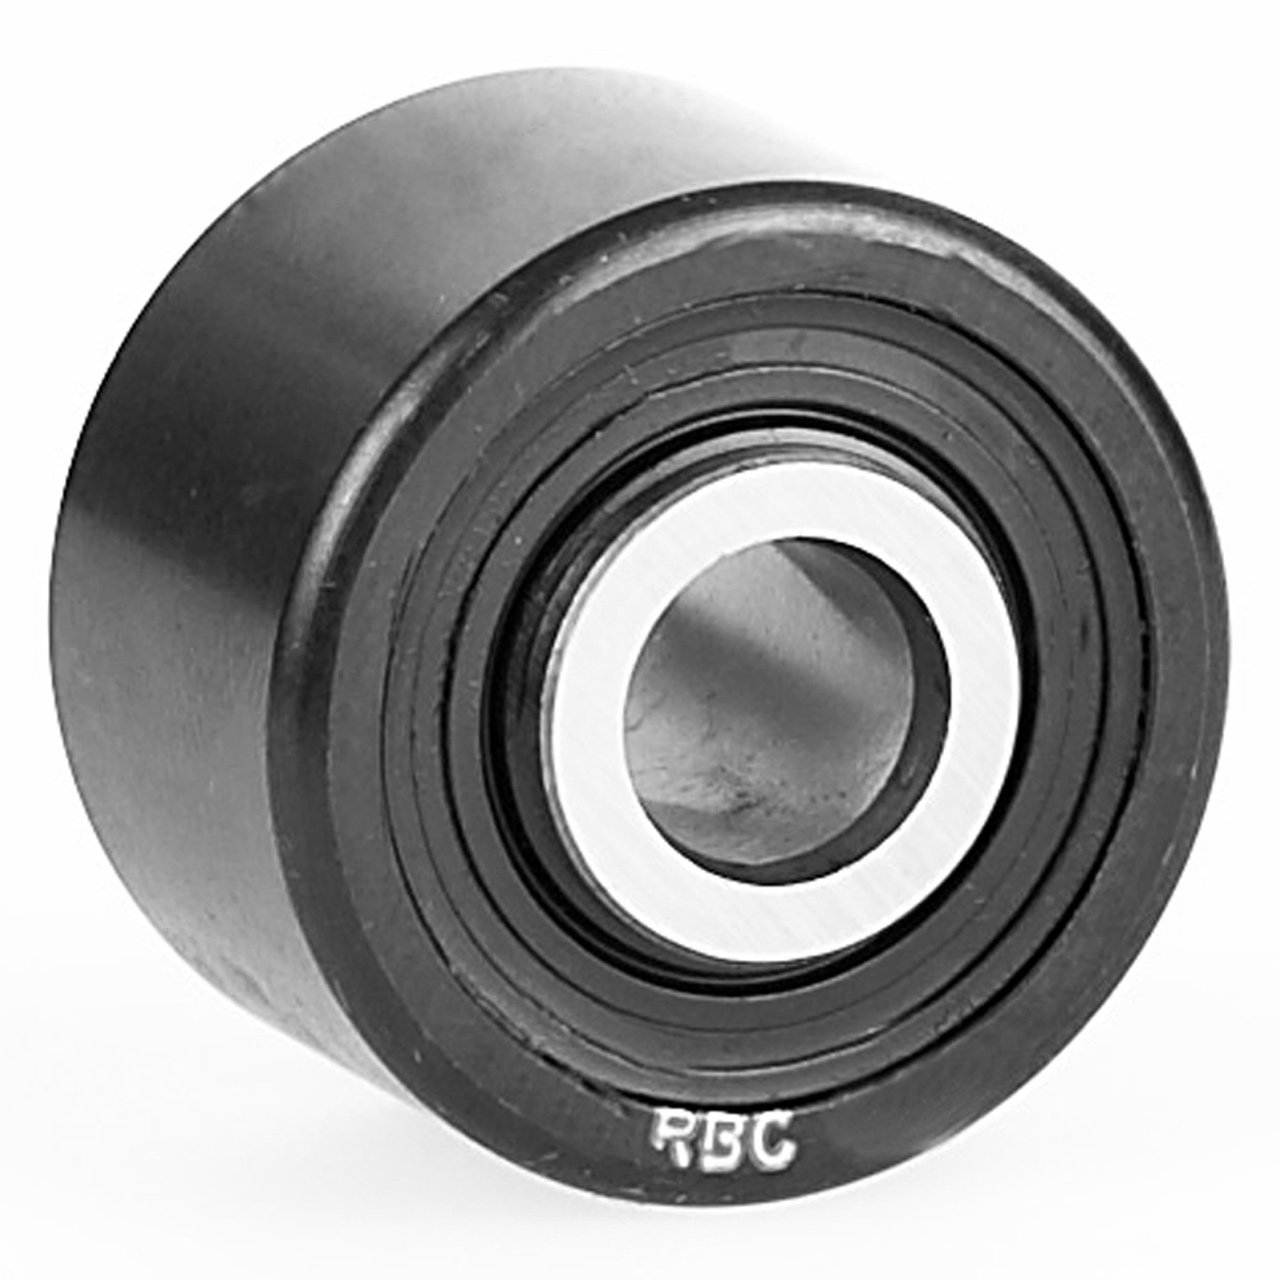 Yoke Type RBC Cam Follower RBY11//2 1.500 OD x 0.4375 ID Without Stud RBC Roller Cylindrical Roller Design Cam Follower